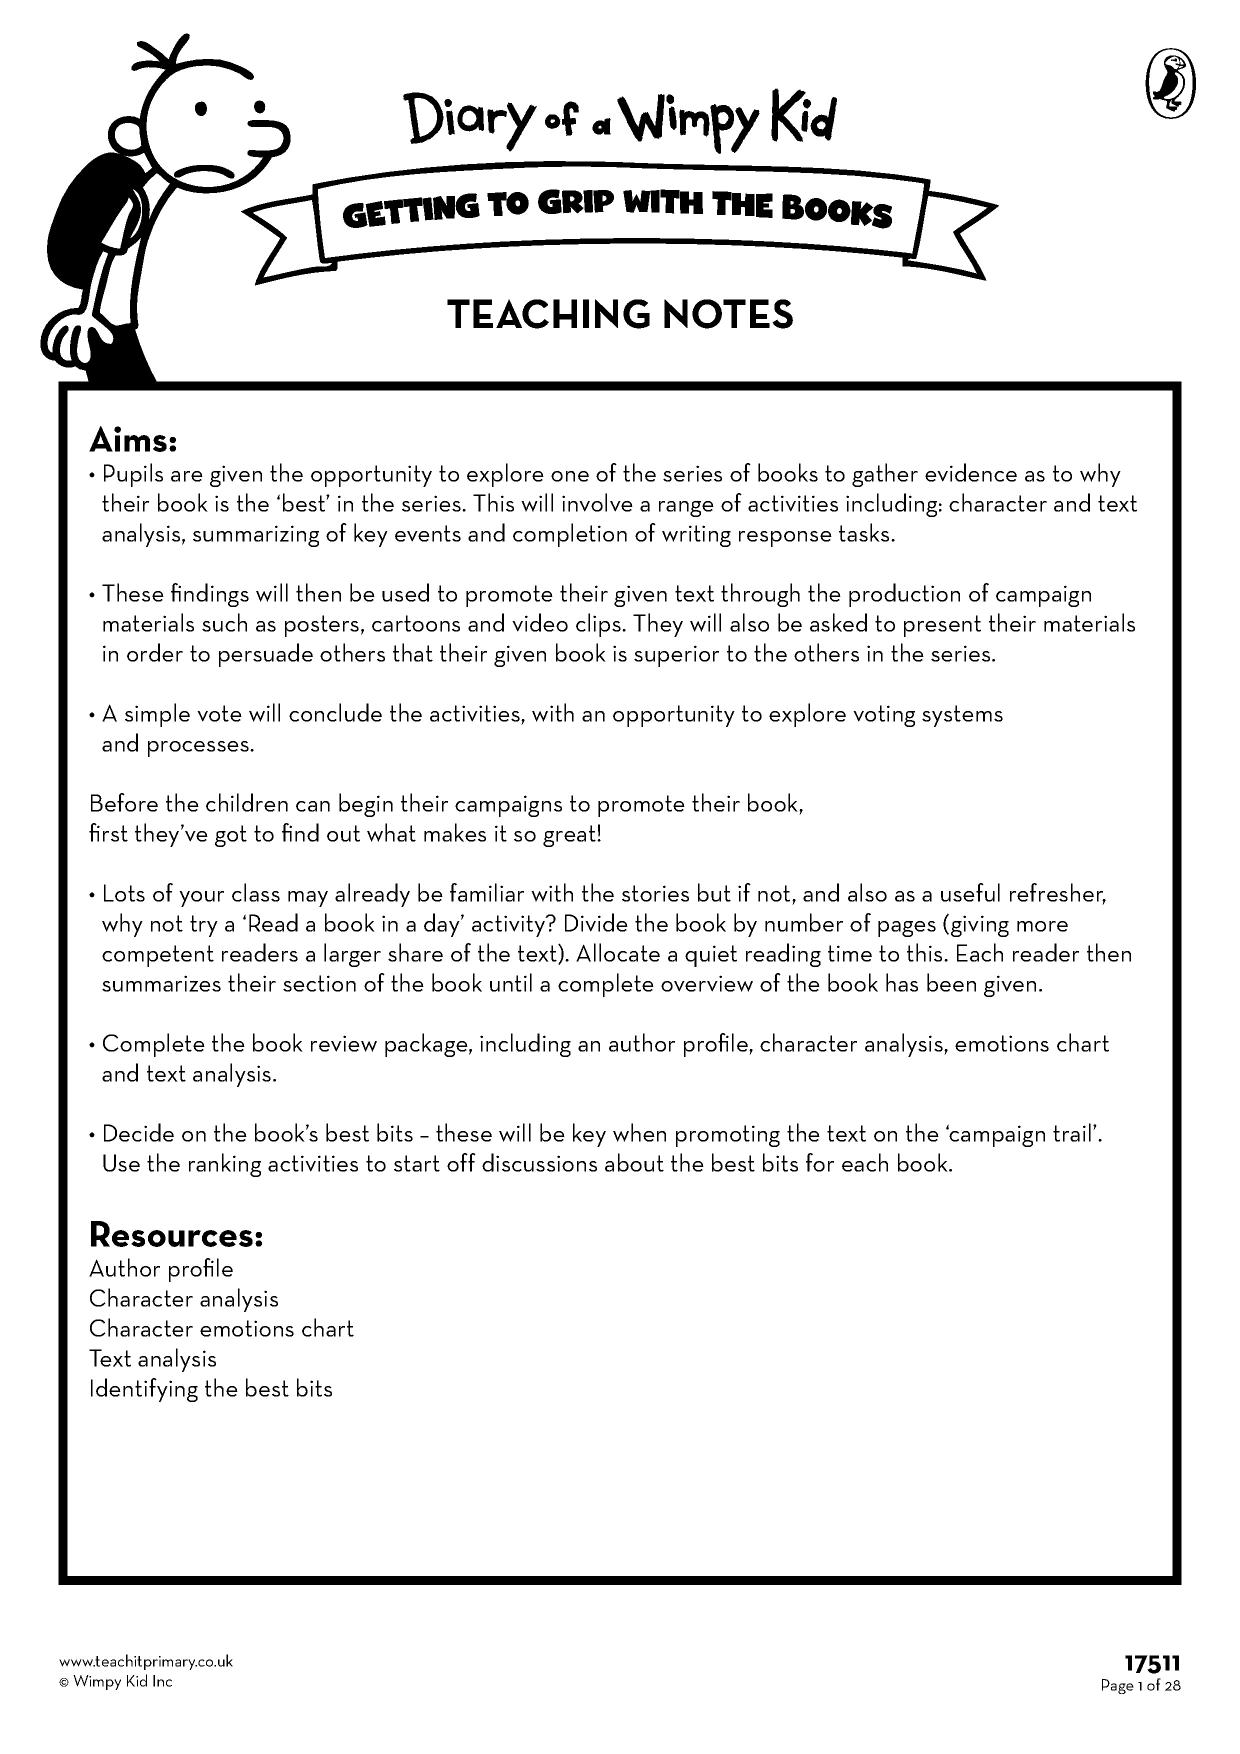 picture regarding Diary of a Wimpy Kid Printable identify Diary of a Wimpy Little one Taking toward grips with the guides